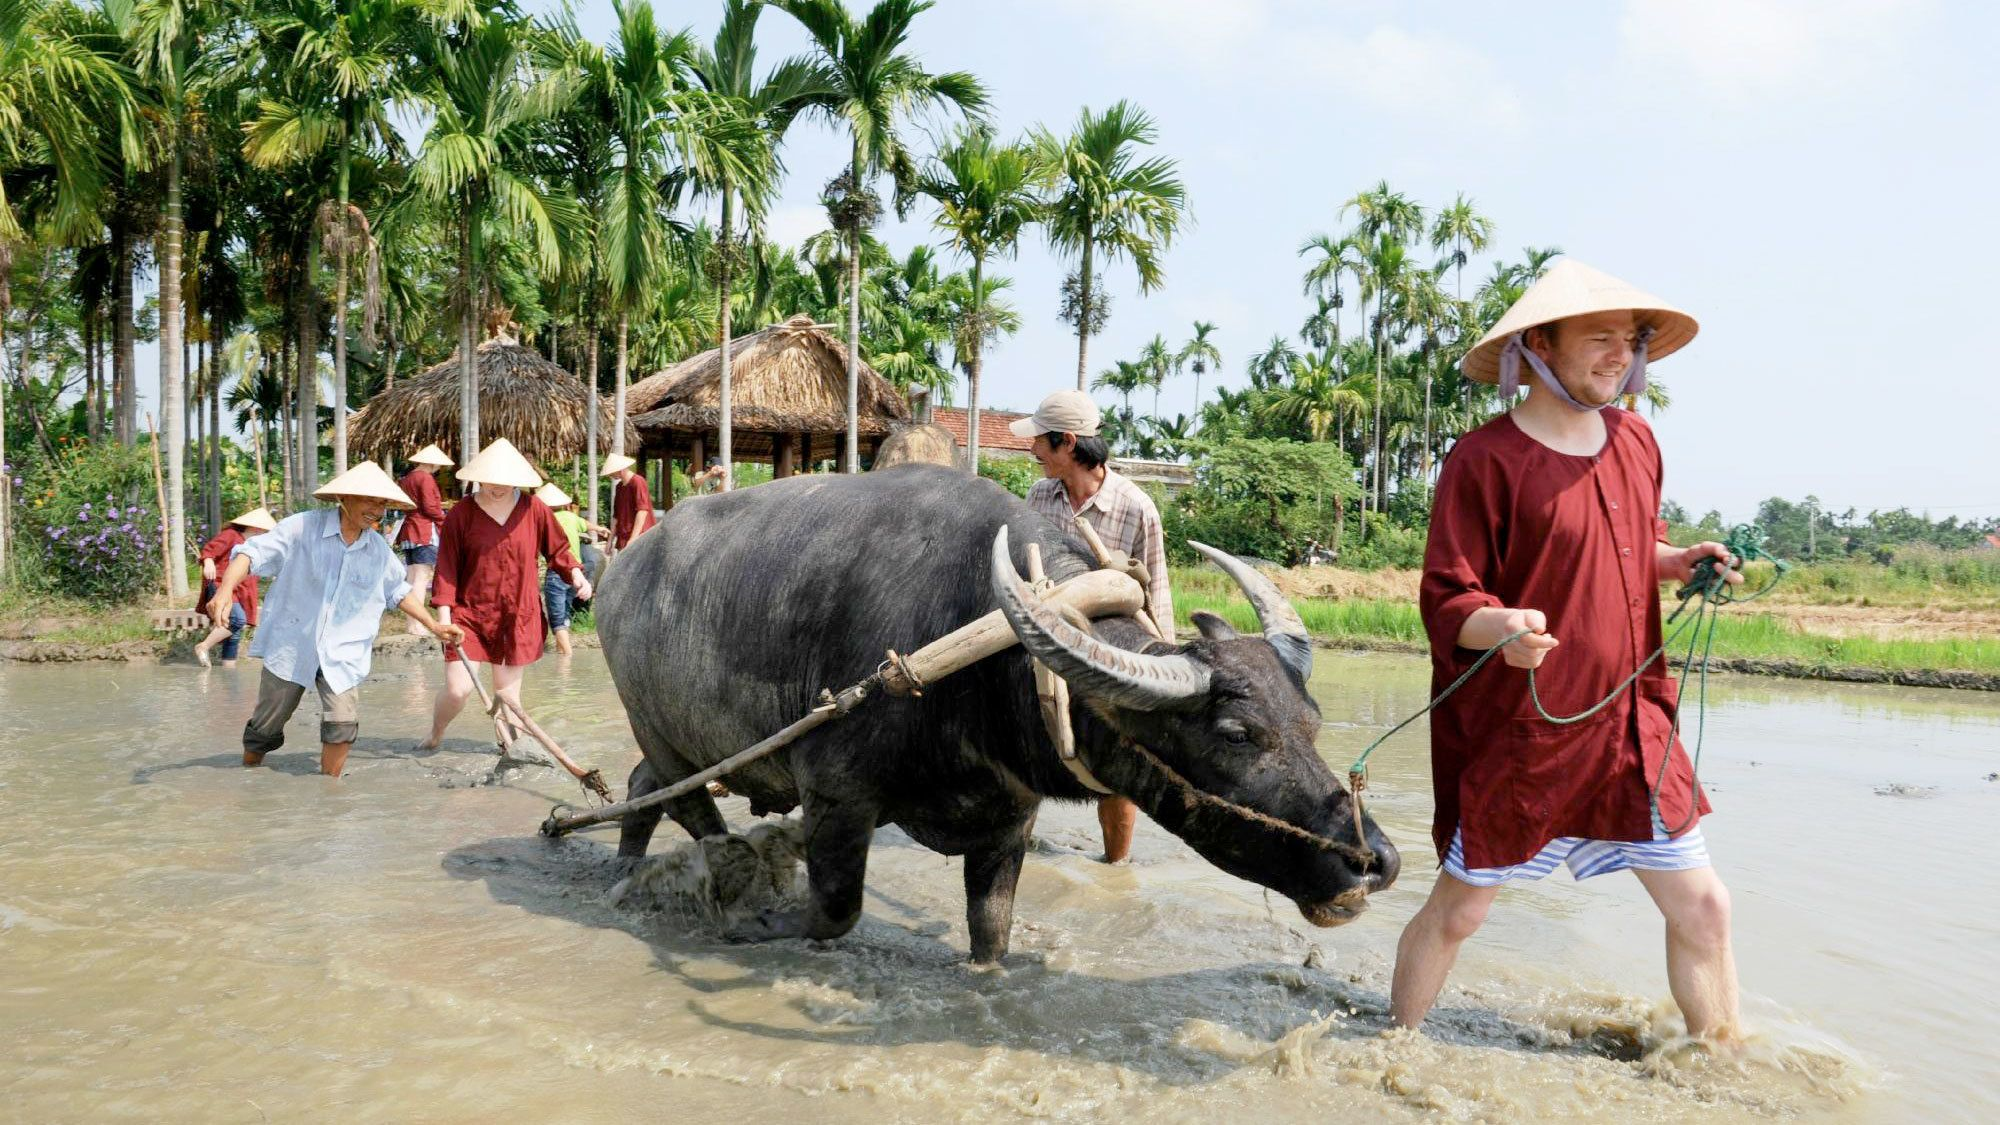 Full-Day Guided Sightseeing Tour to Ben Tre & the Mekong Delta with Lunch